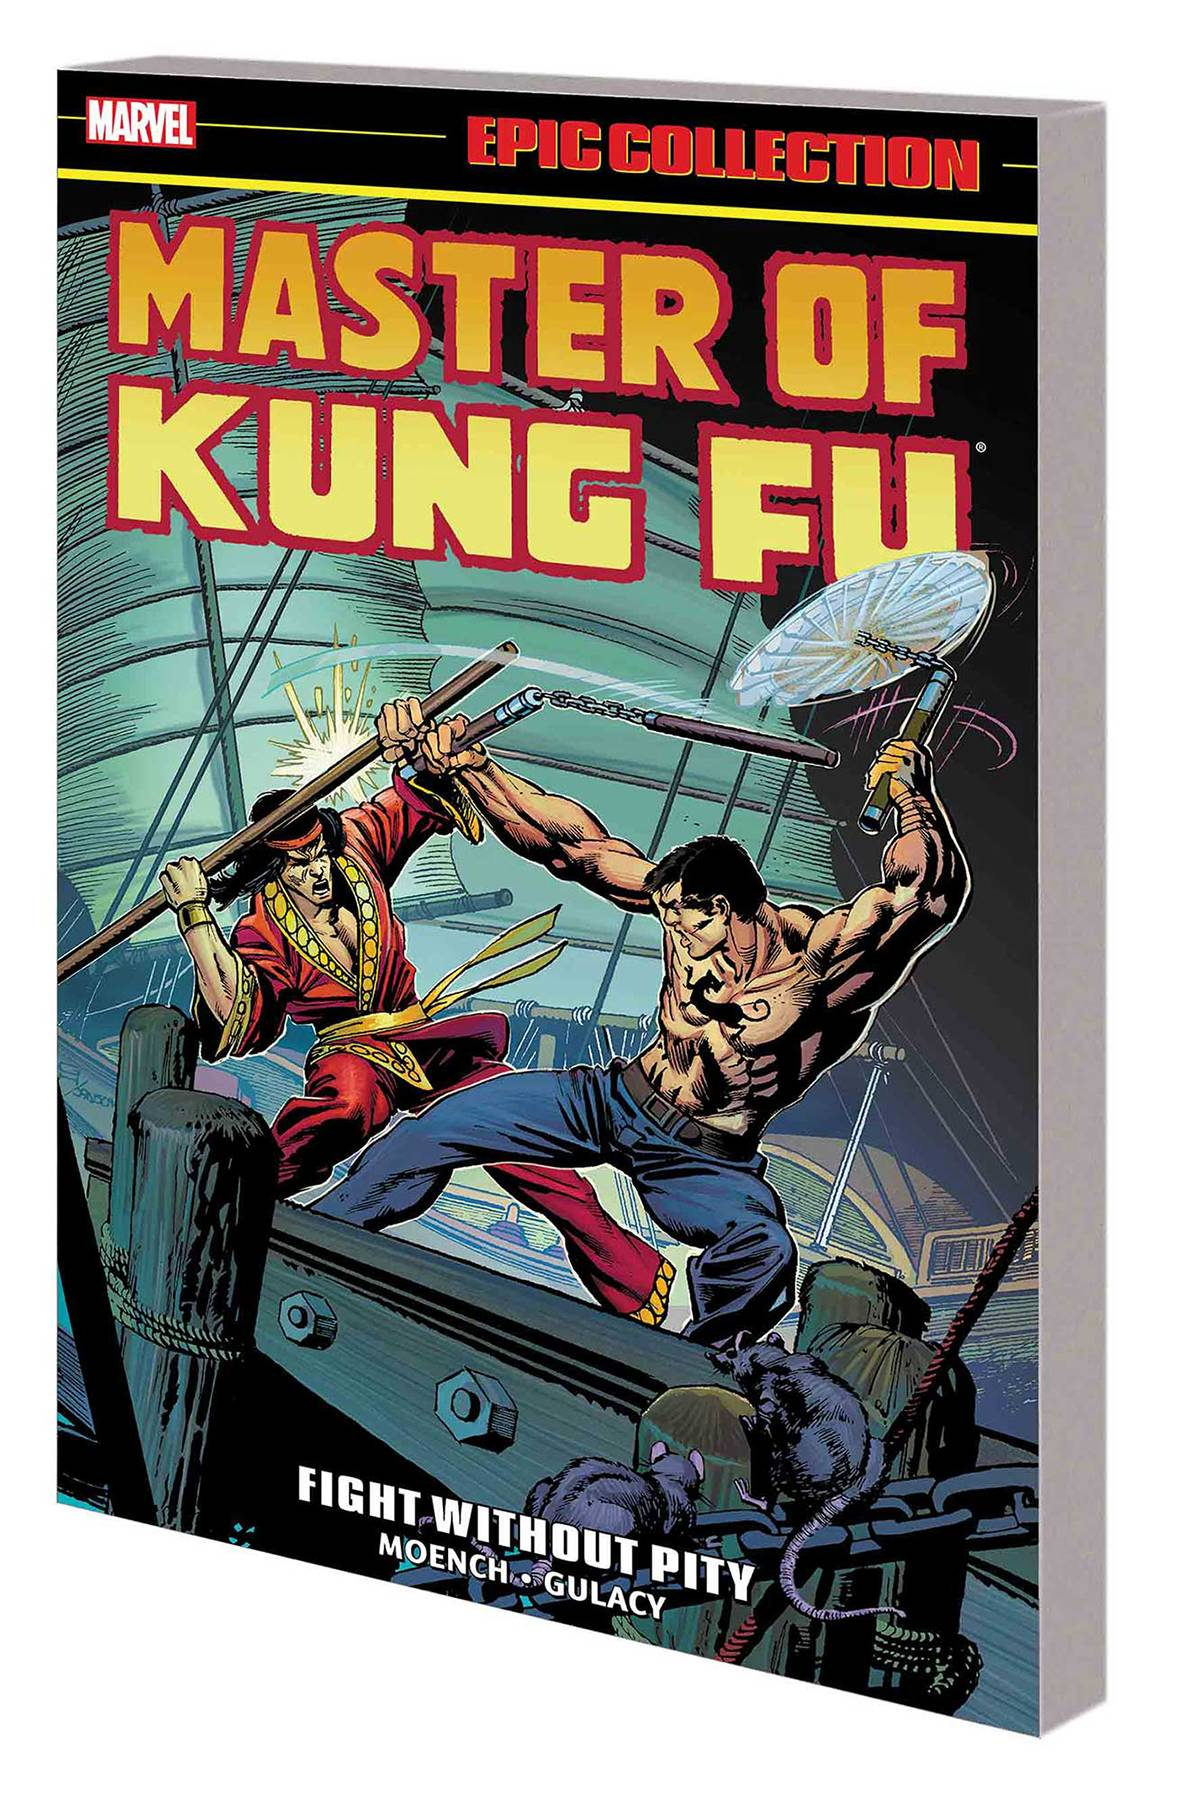 MASTER OF KUNG FU EPIC COLLECTION TP FIGHT WITHOUT PITY.jpg